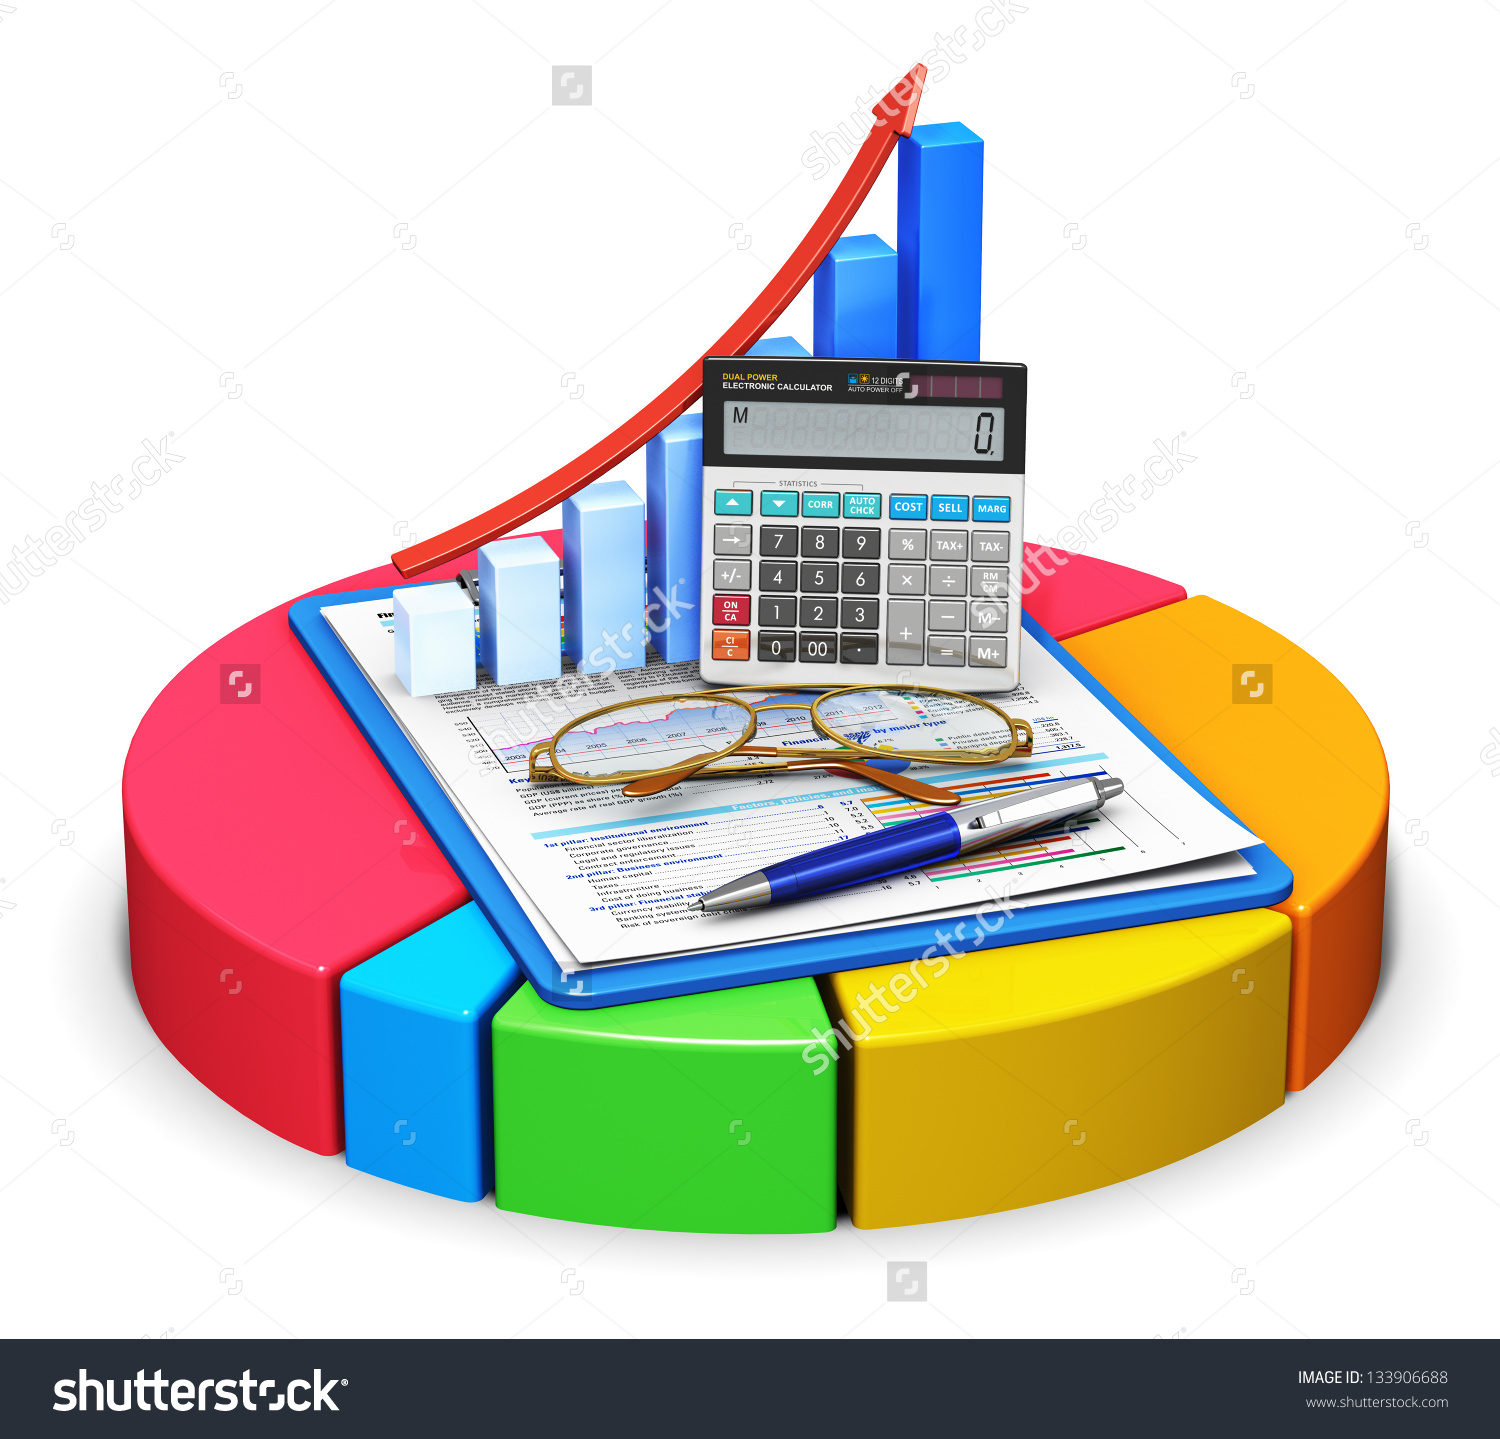 Accountant cliparts free download. Accounting clipart finance